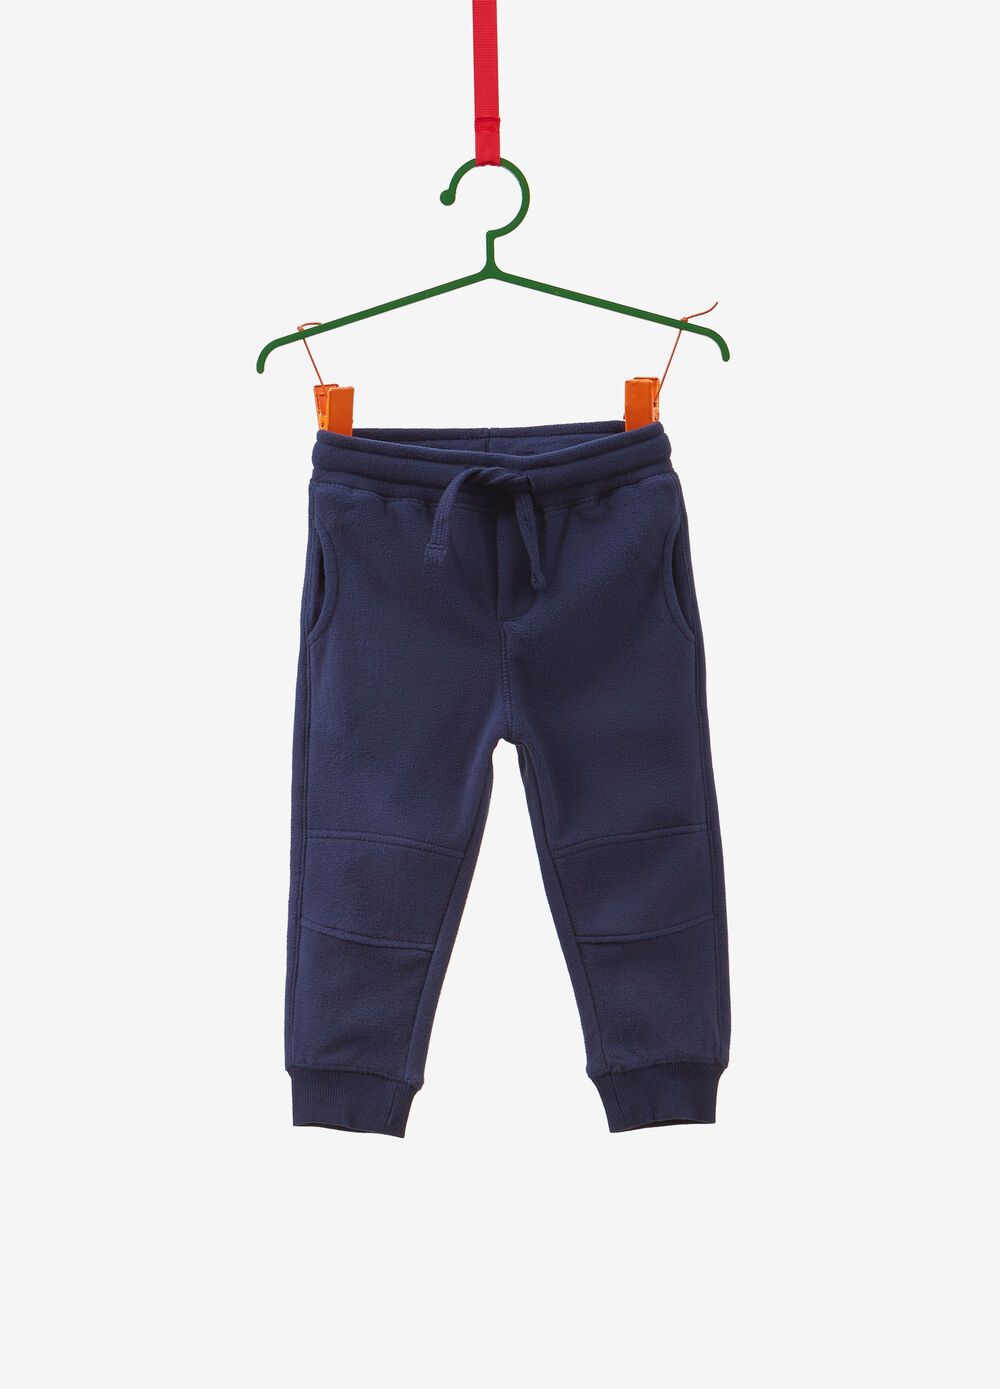 Solid colour trousers with stitching